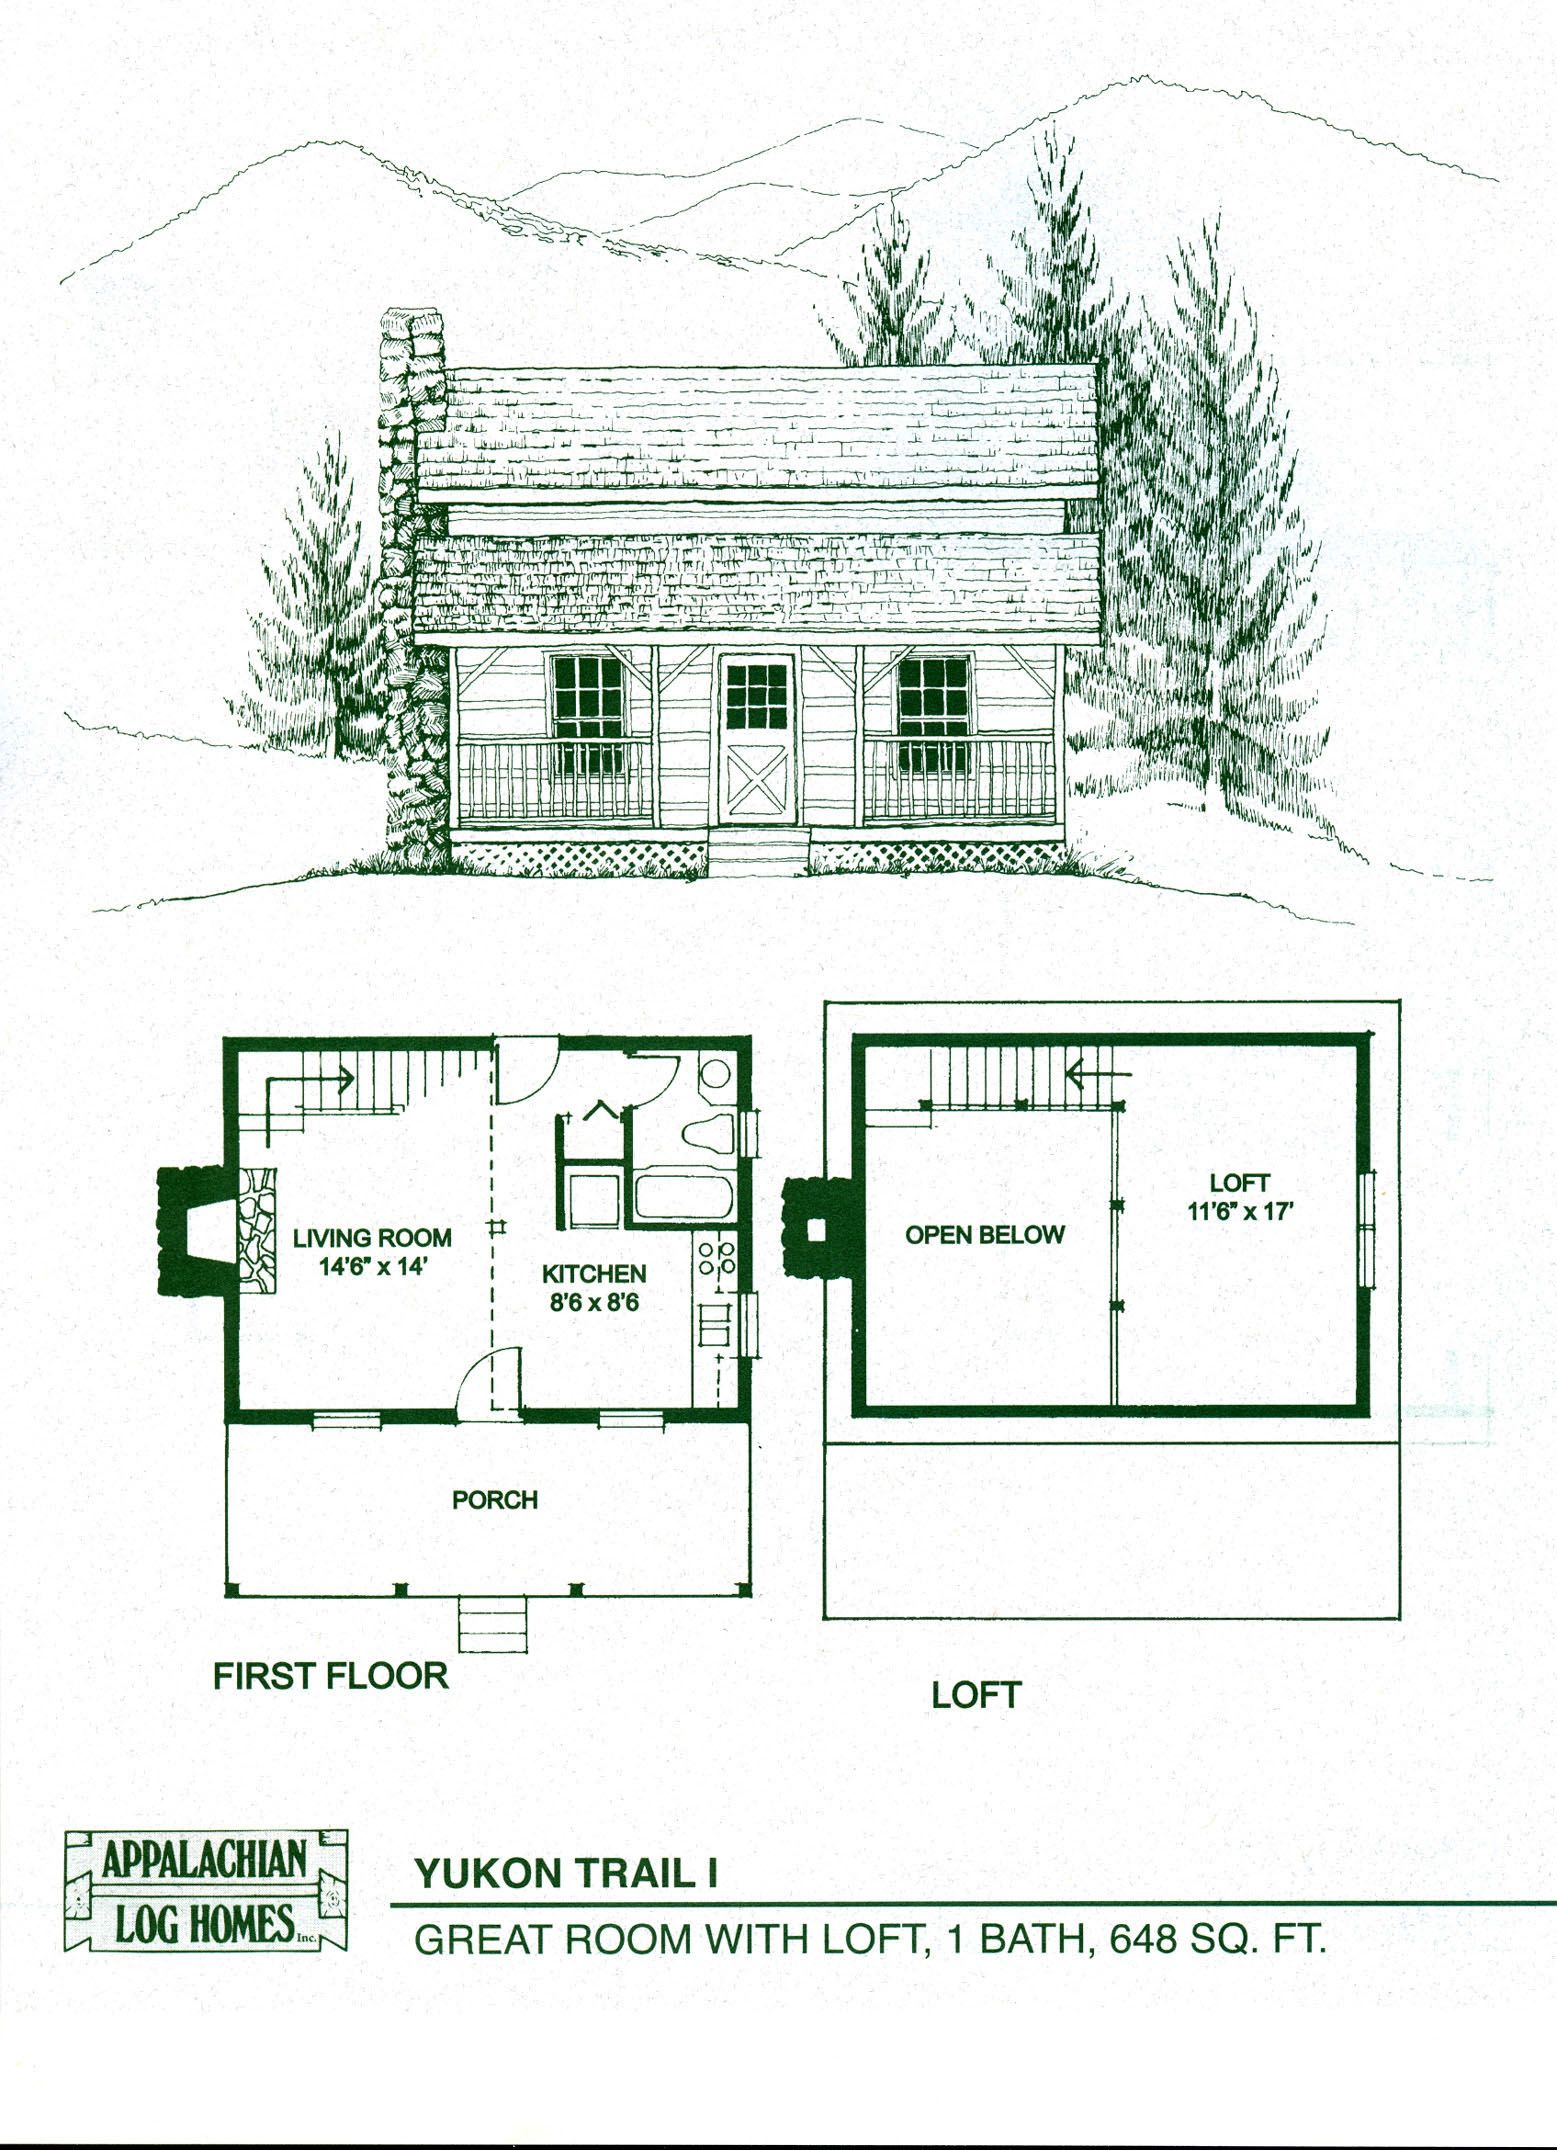 Log home floor plans log cabin kits appalachian log Small cabin blueprints free